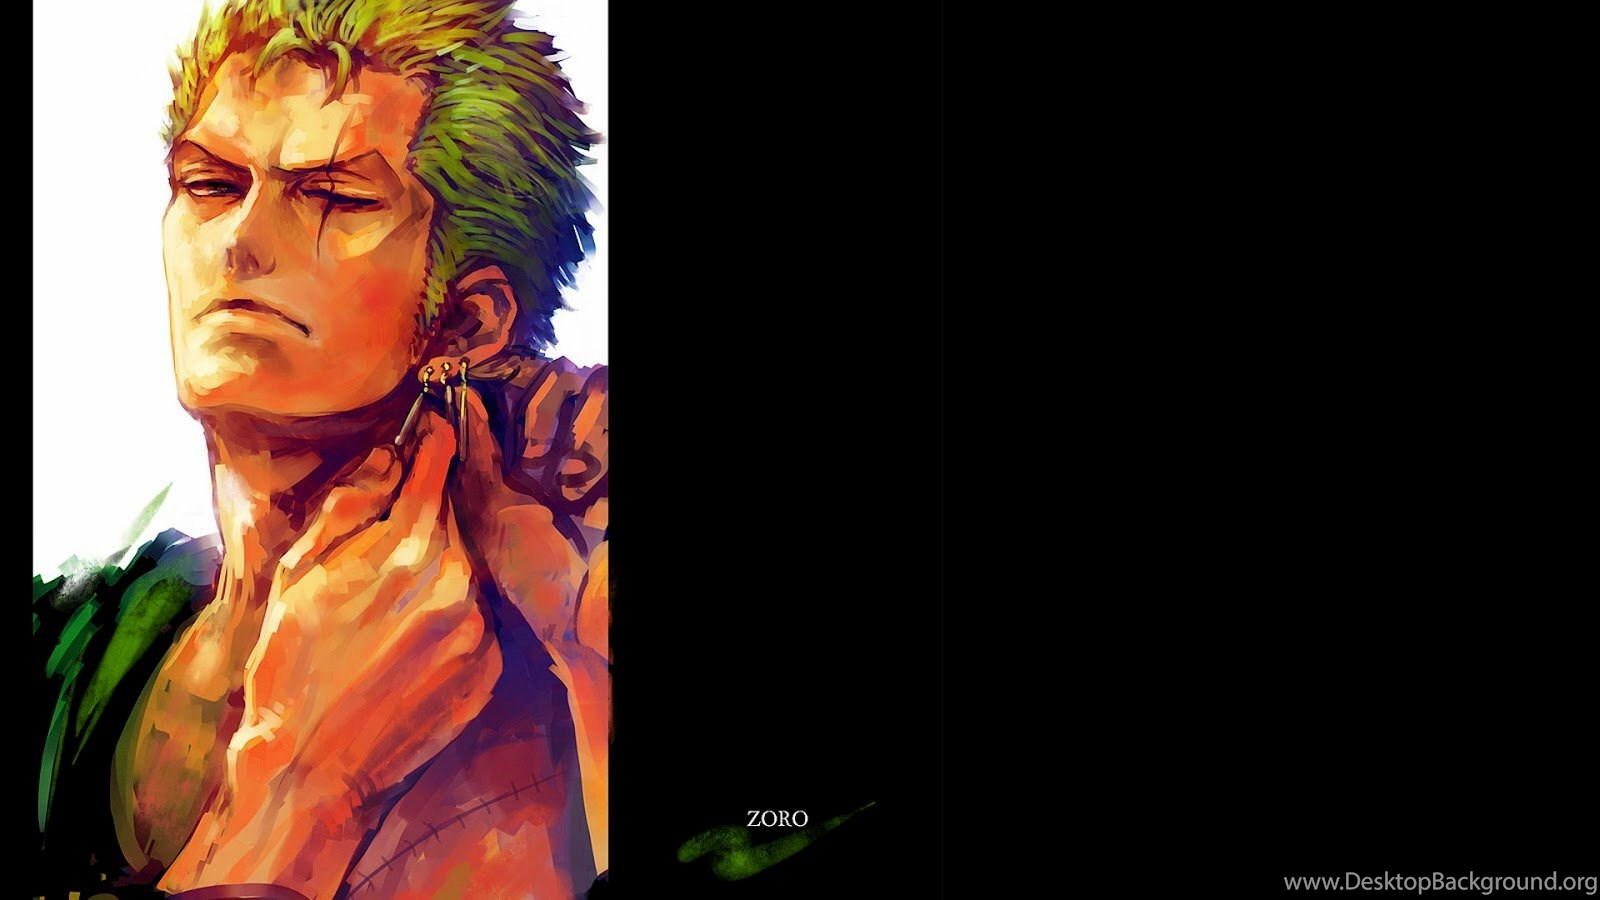 Zoro One Piece After 2 Years Wallpapers Hd Desktop Background